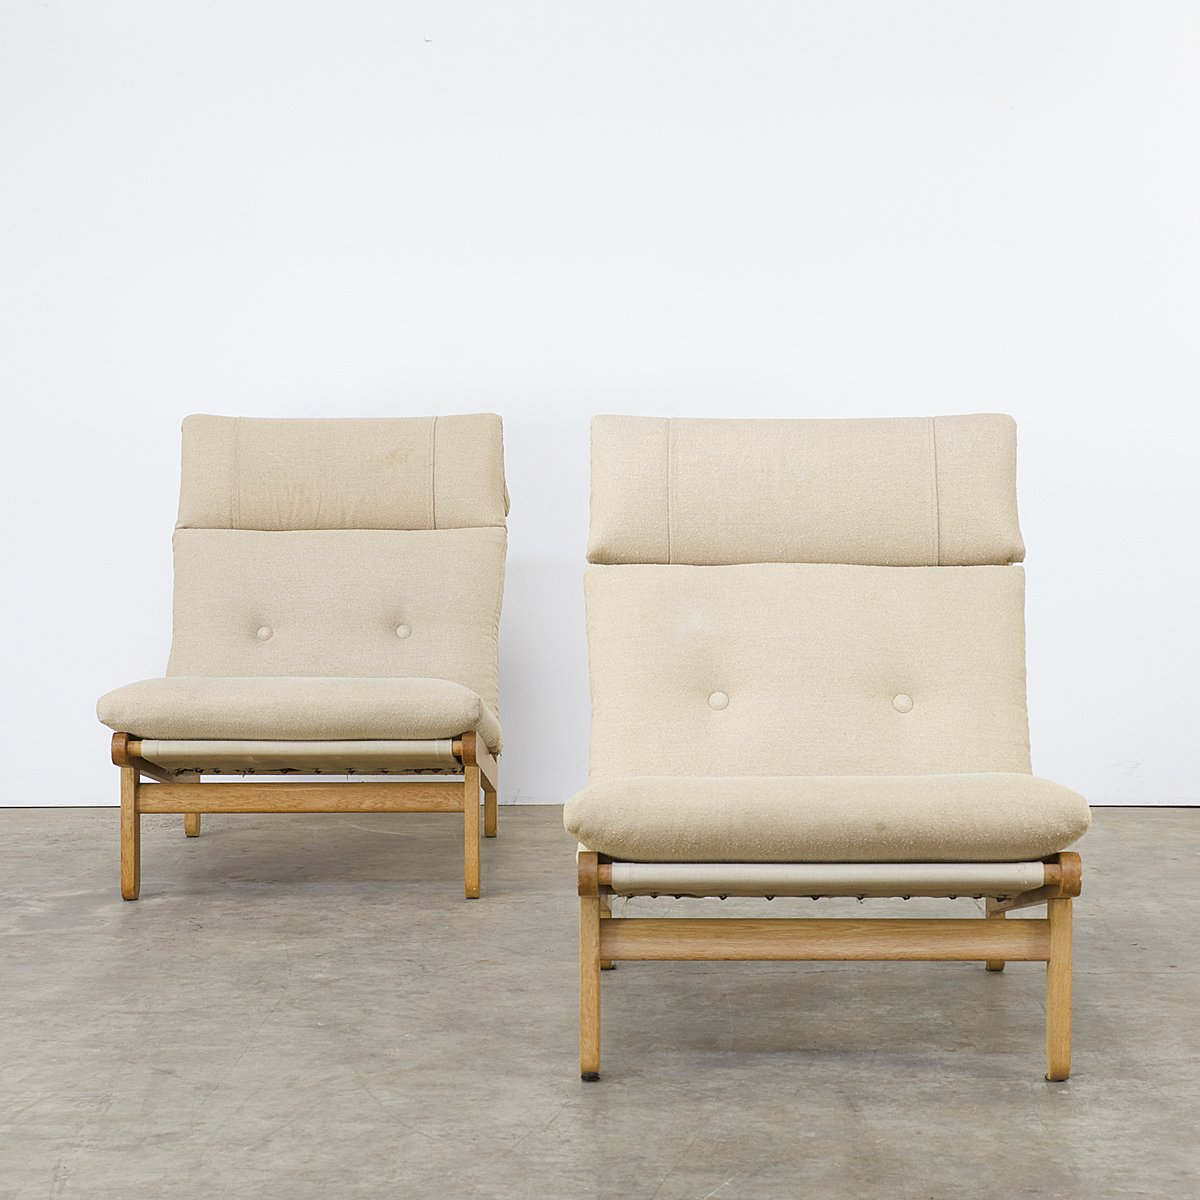 A Frame Easy Chairs Ottoman Coffee Table By Bernt Petersen For Schiang 1960s For Sale At Pamono